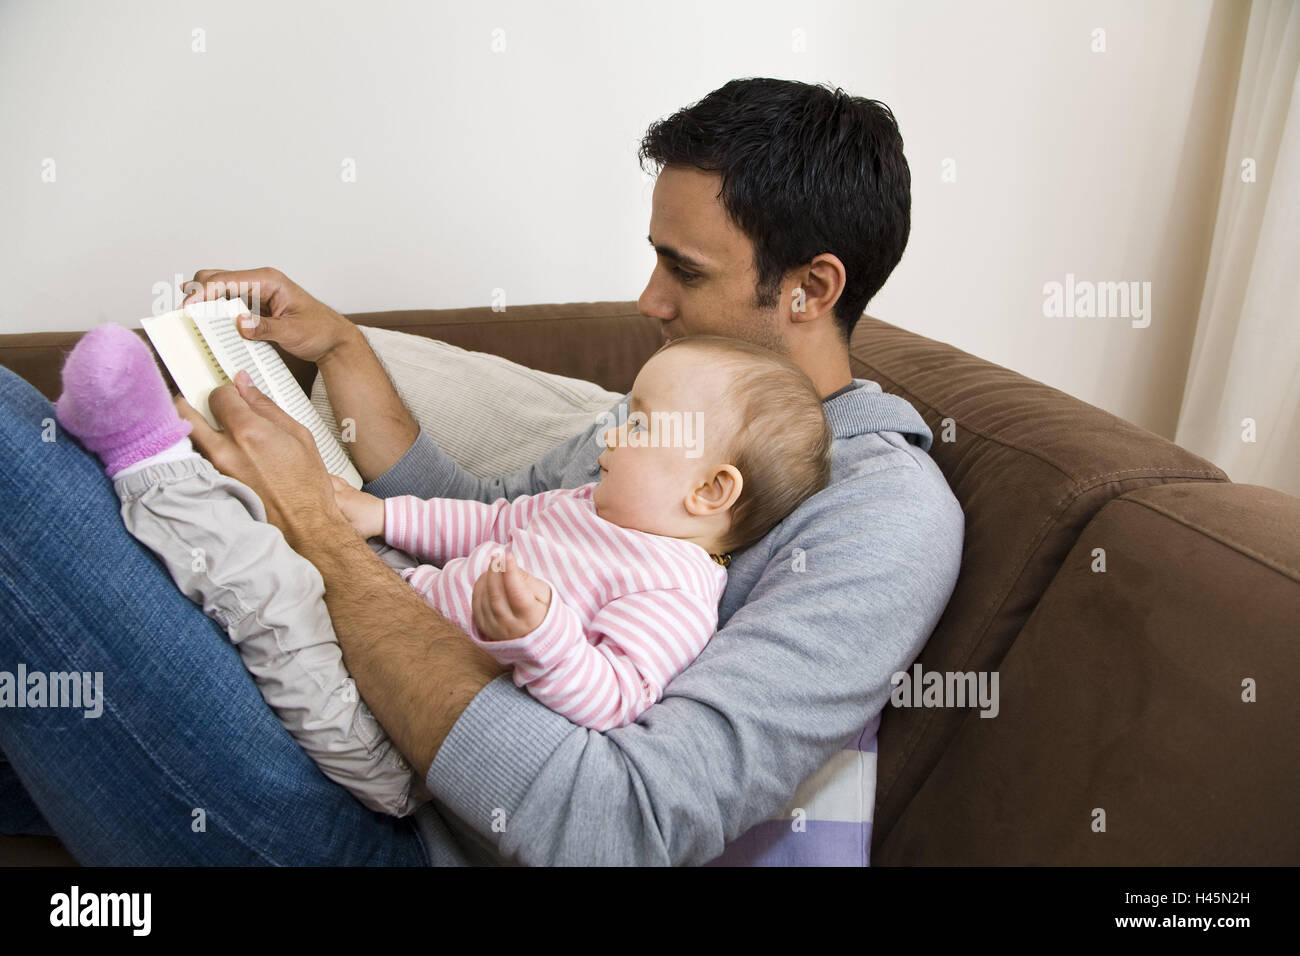 father baby read infant book family read man sofa trust